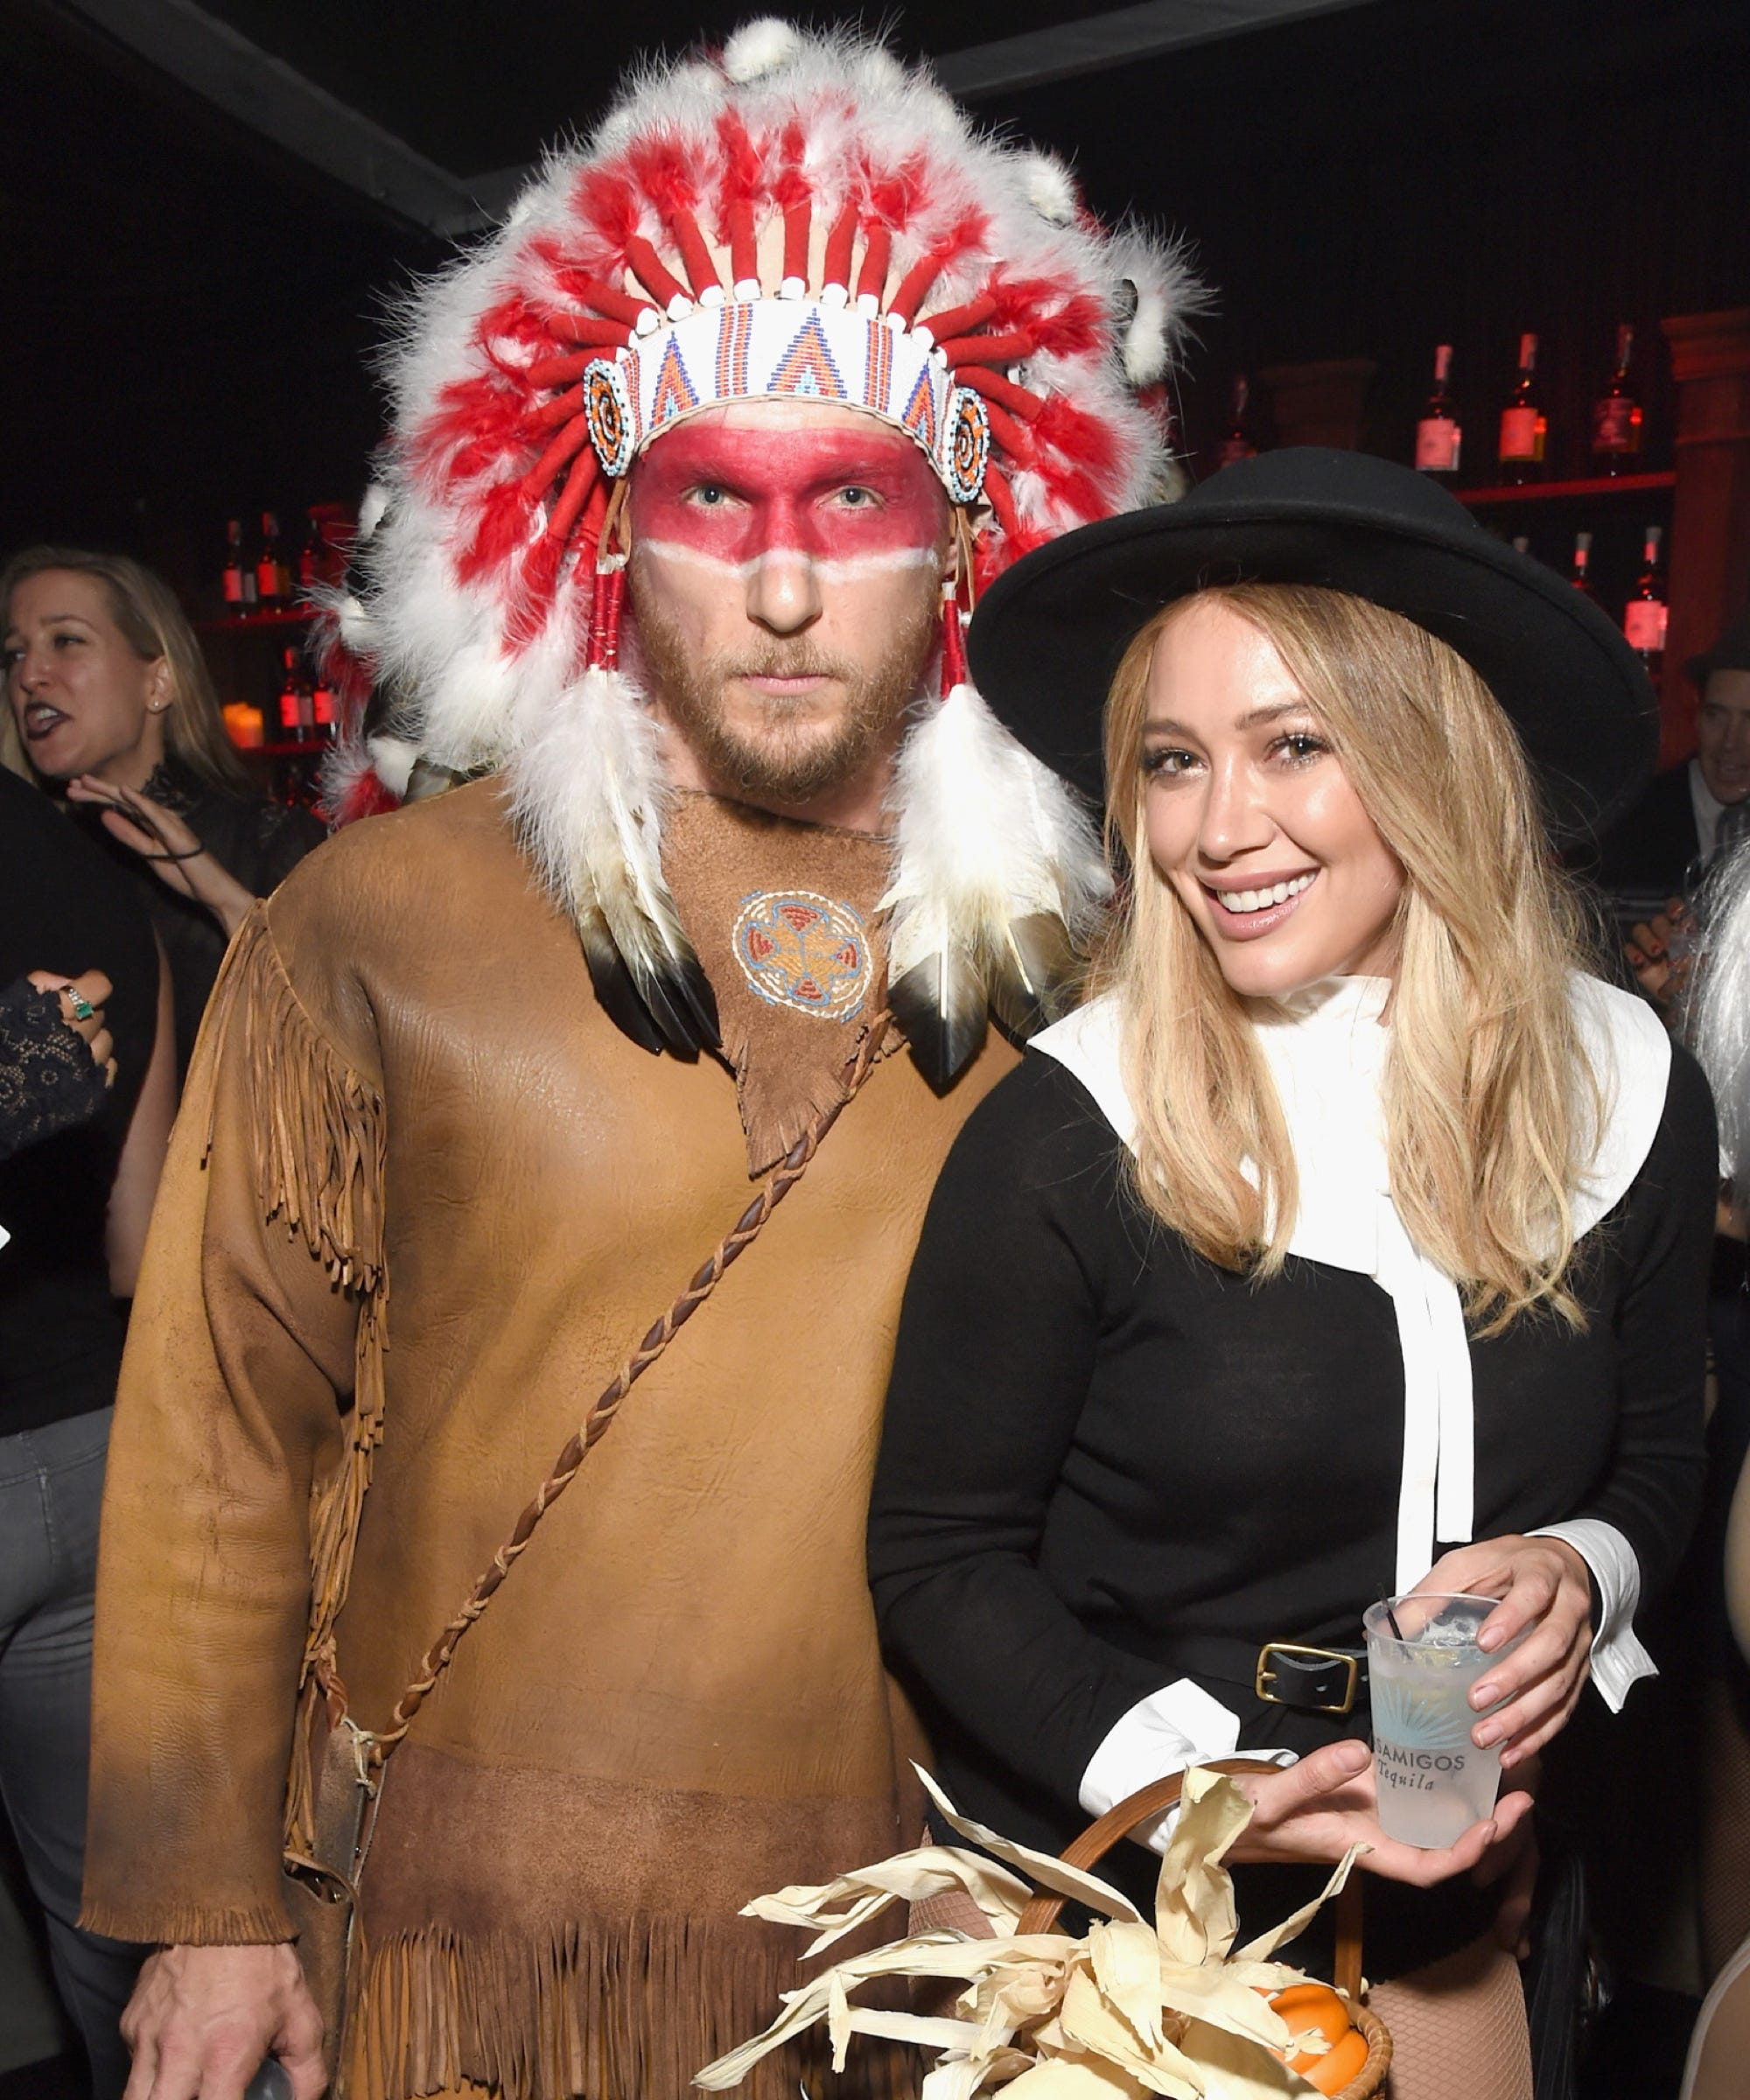 hilary duff racist halloween costume pilgrims indians